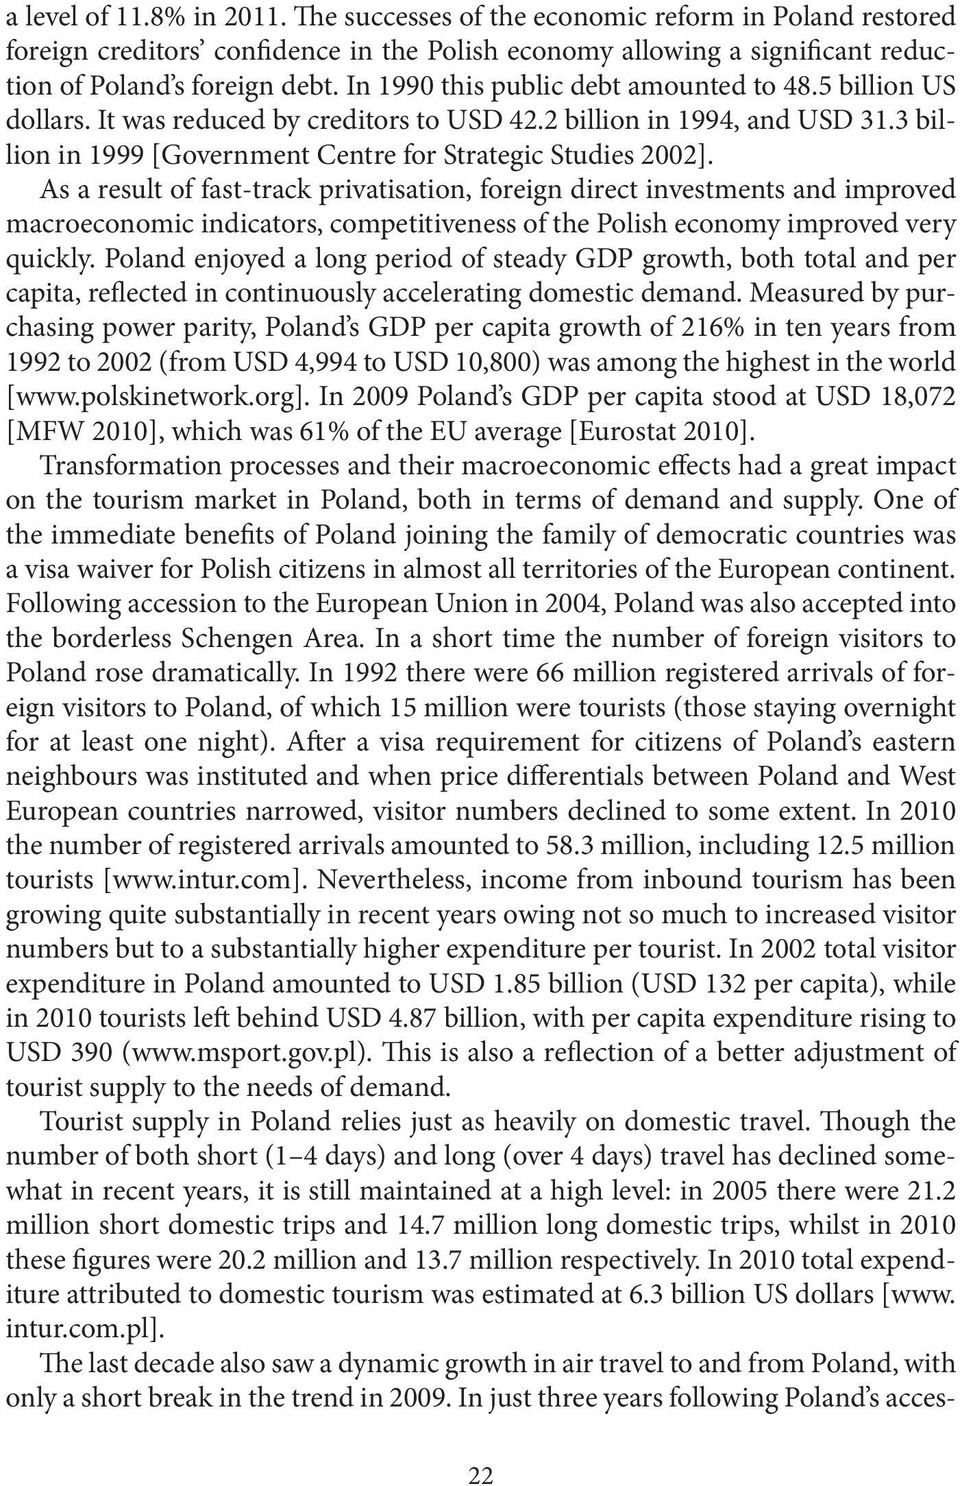 As a result of fast-track privatisation, foreign direct investments and improved macroeconomic indicators, competitiveness of the Polish economy improved very quickly.